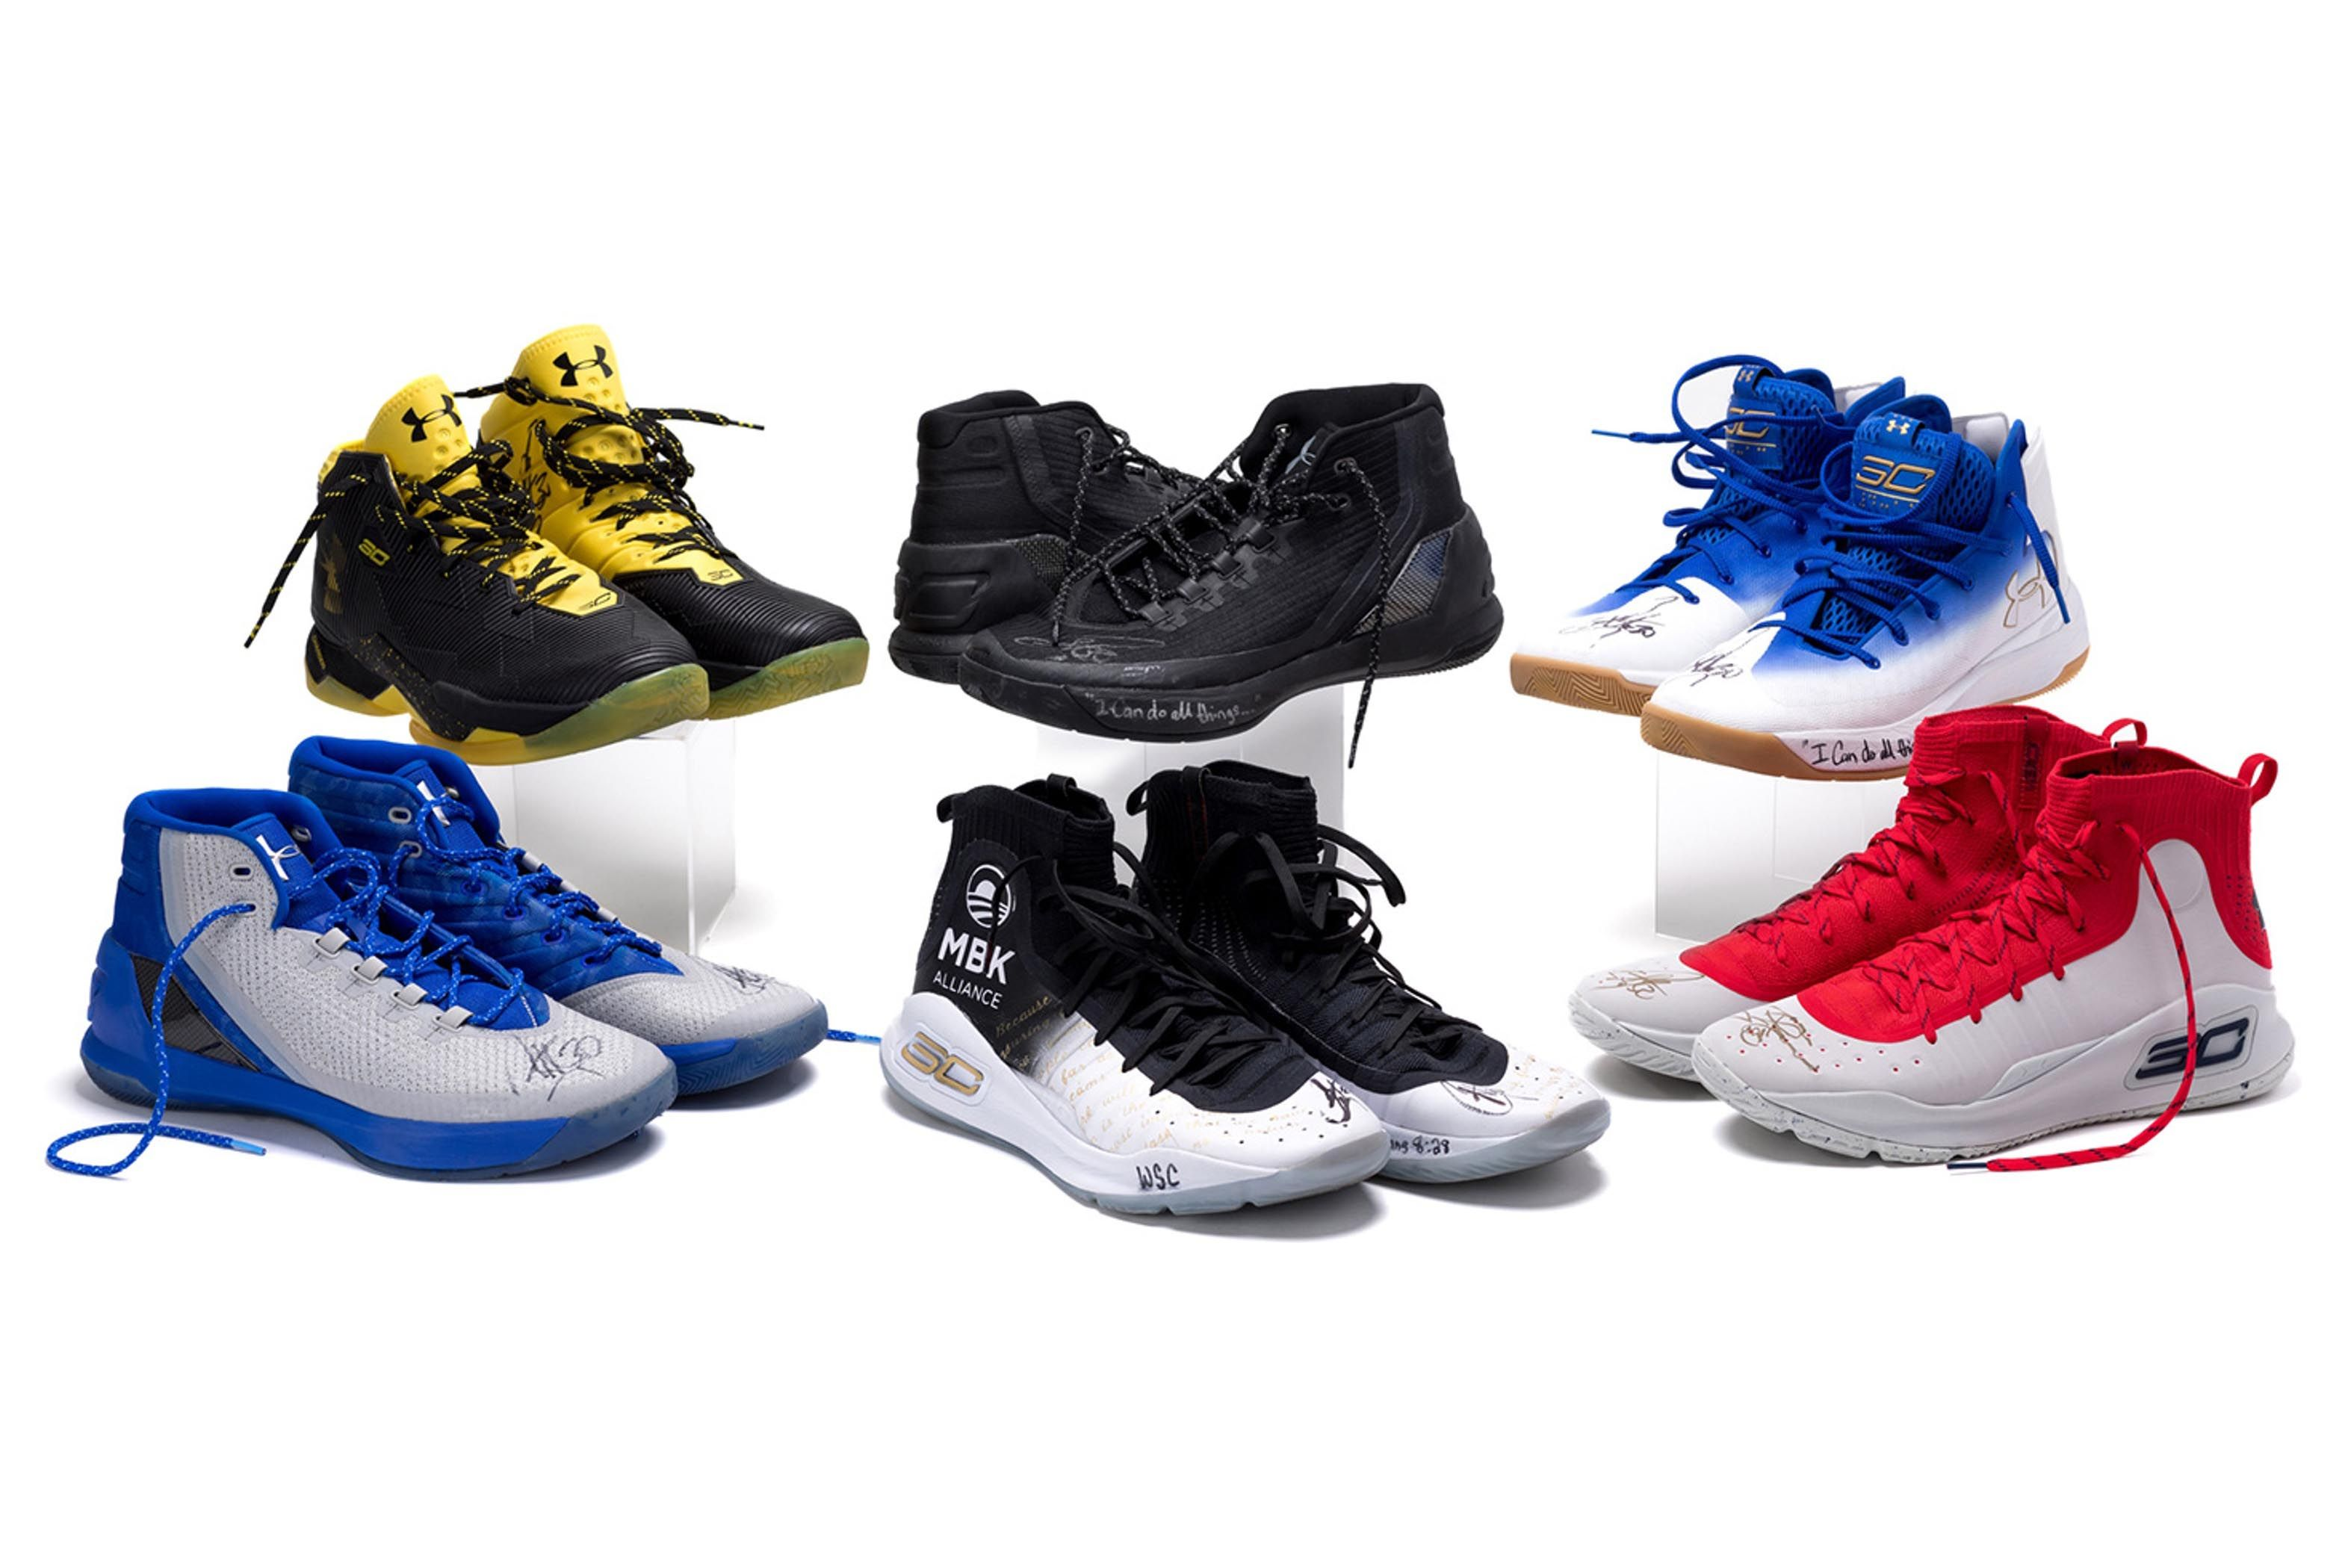 Under Armour Stockx Steph Curry Charity Campaign 1 Sneaker Freaker